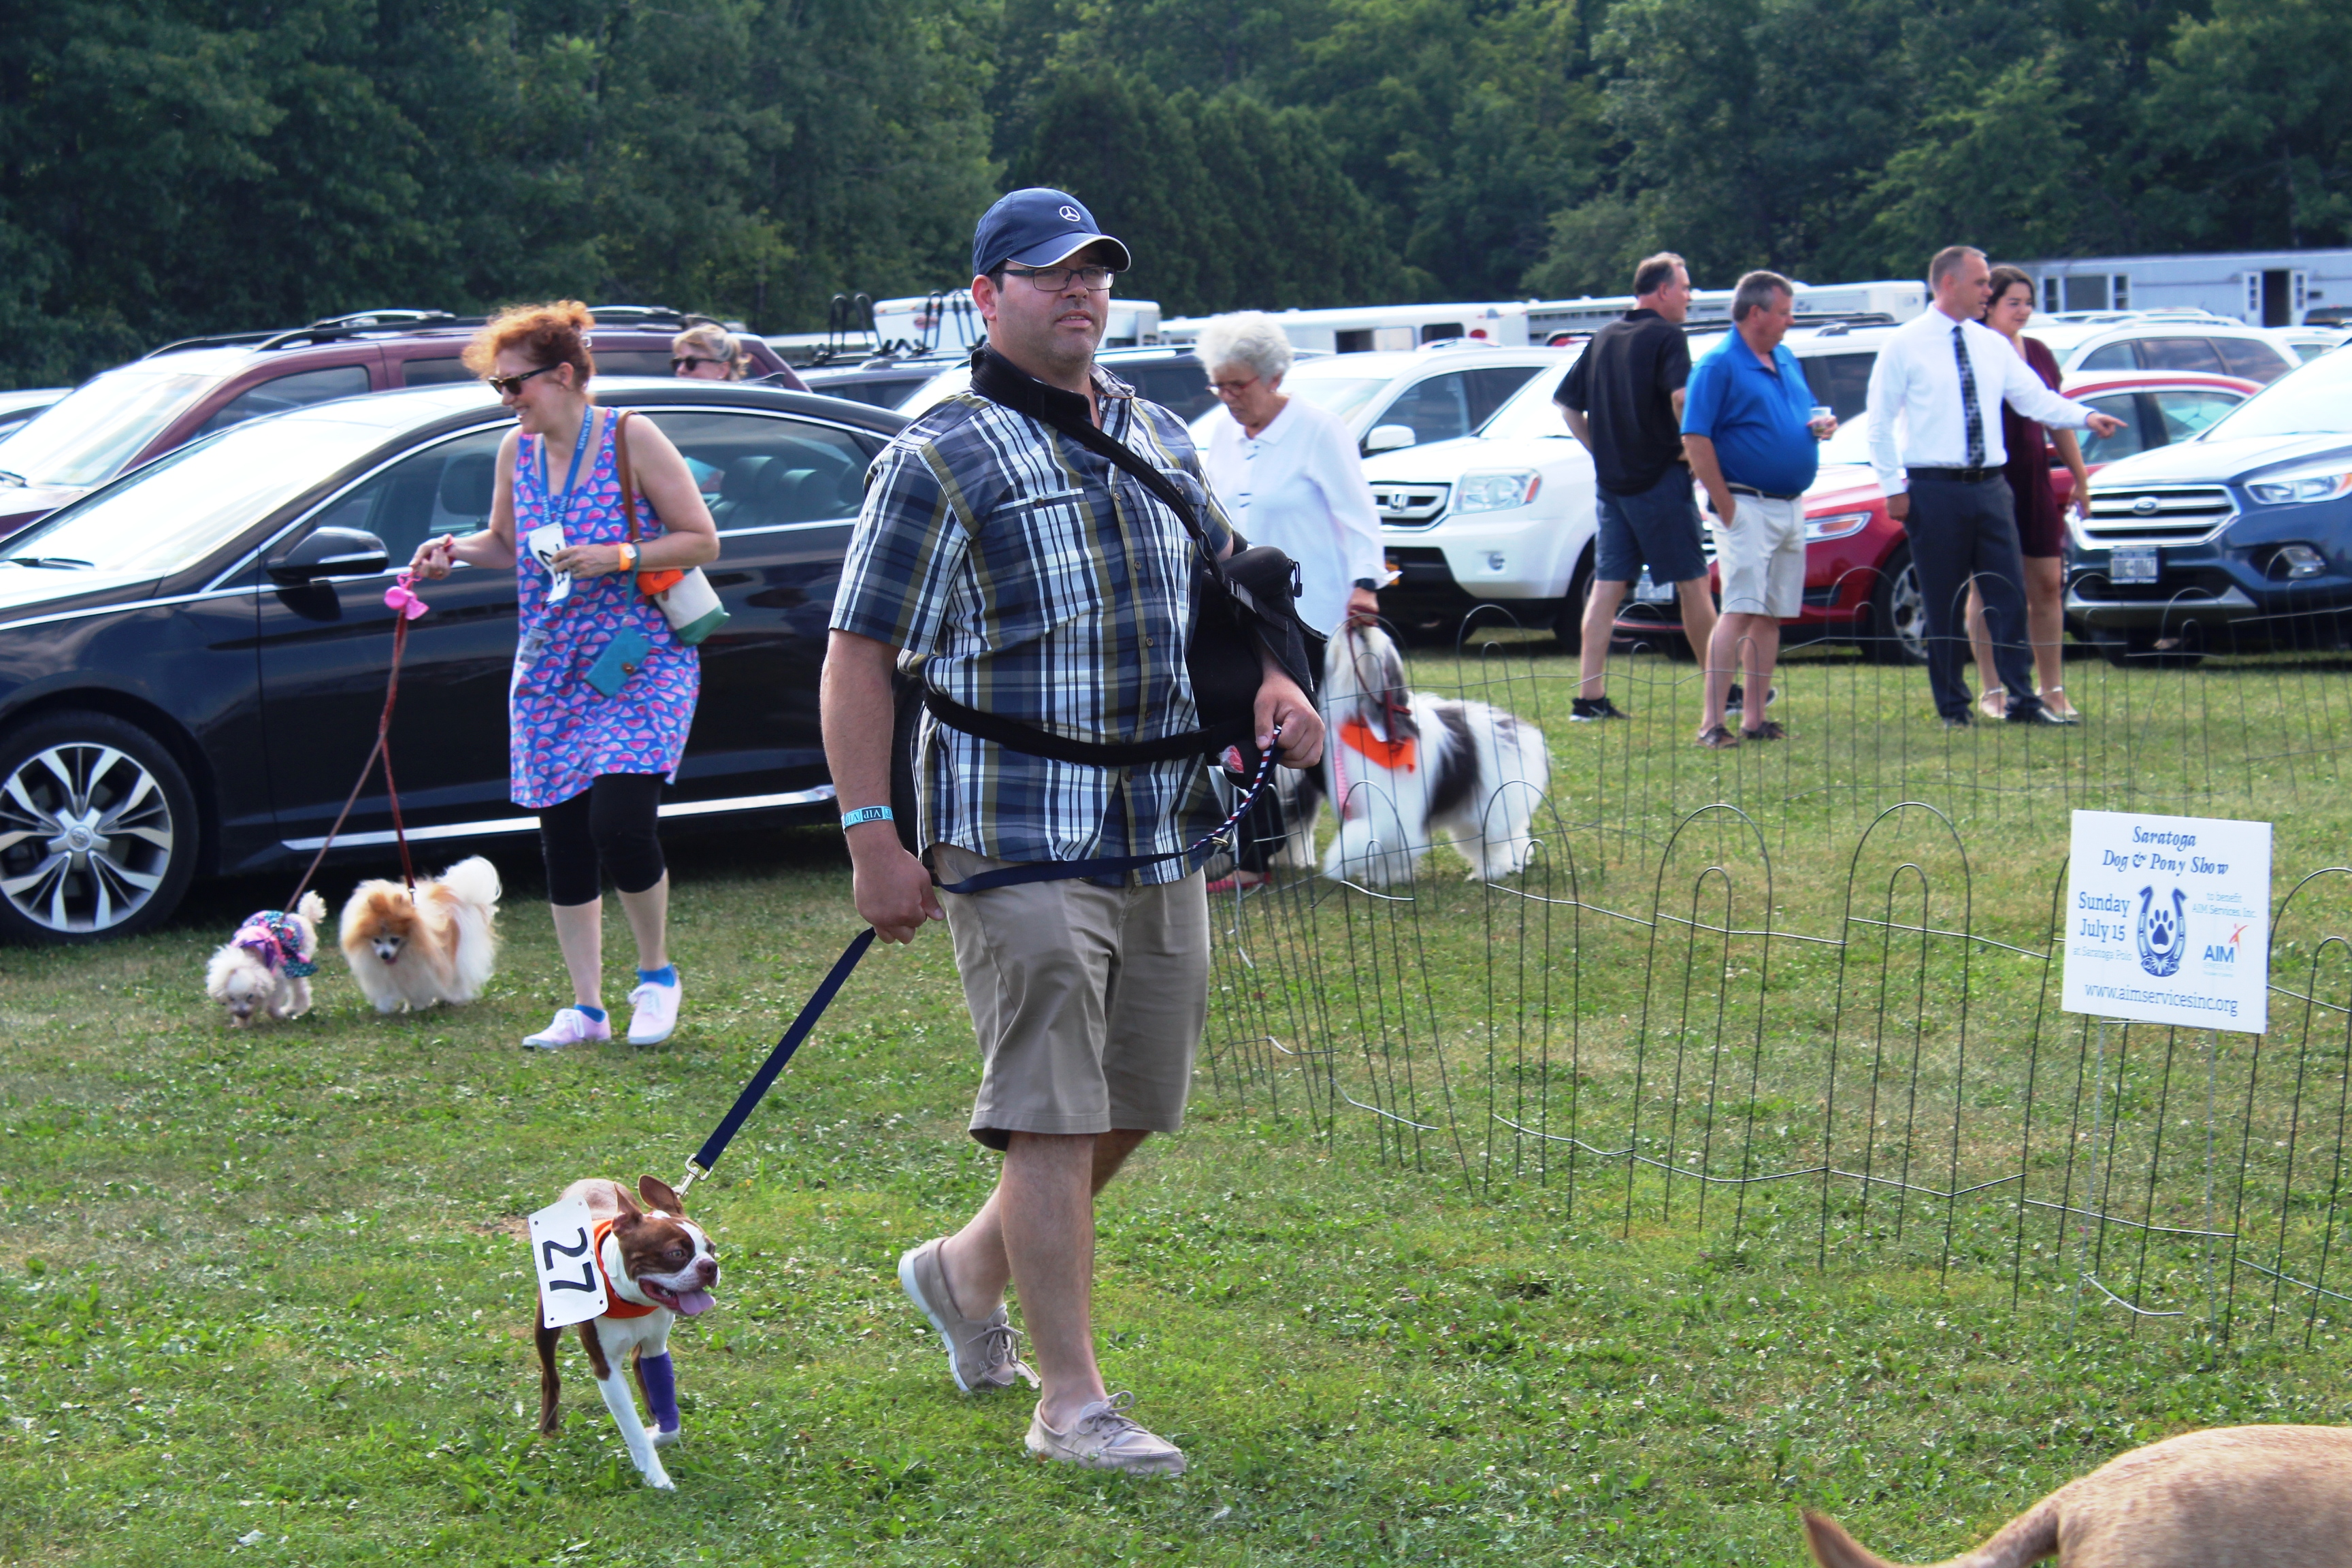 Man walking dog through dog show at the Saratoga Dogs Pony Show to benefit AIM Services, Inc.